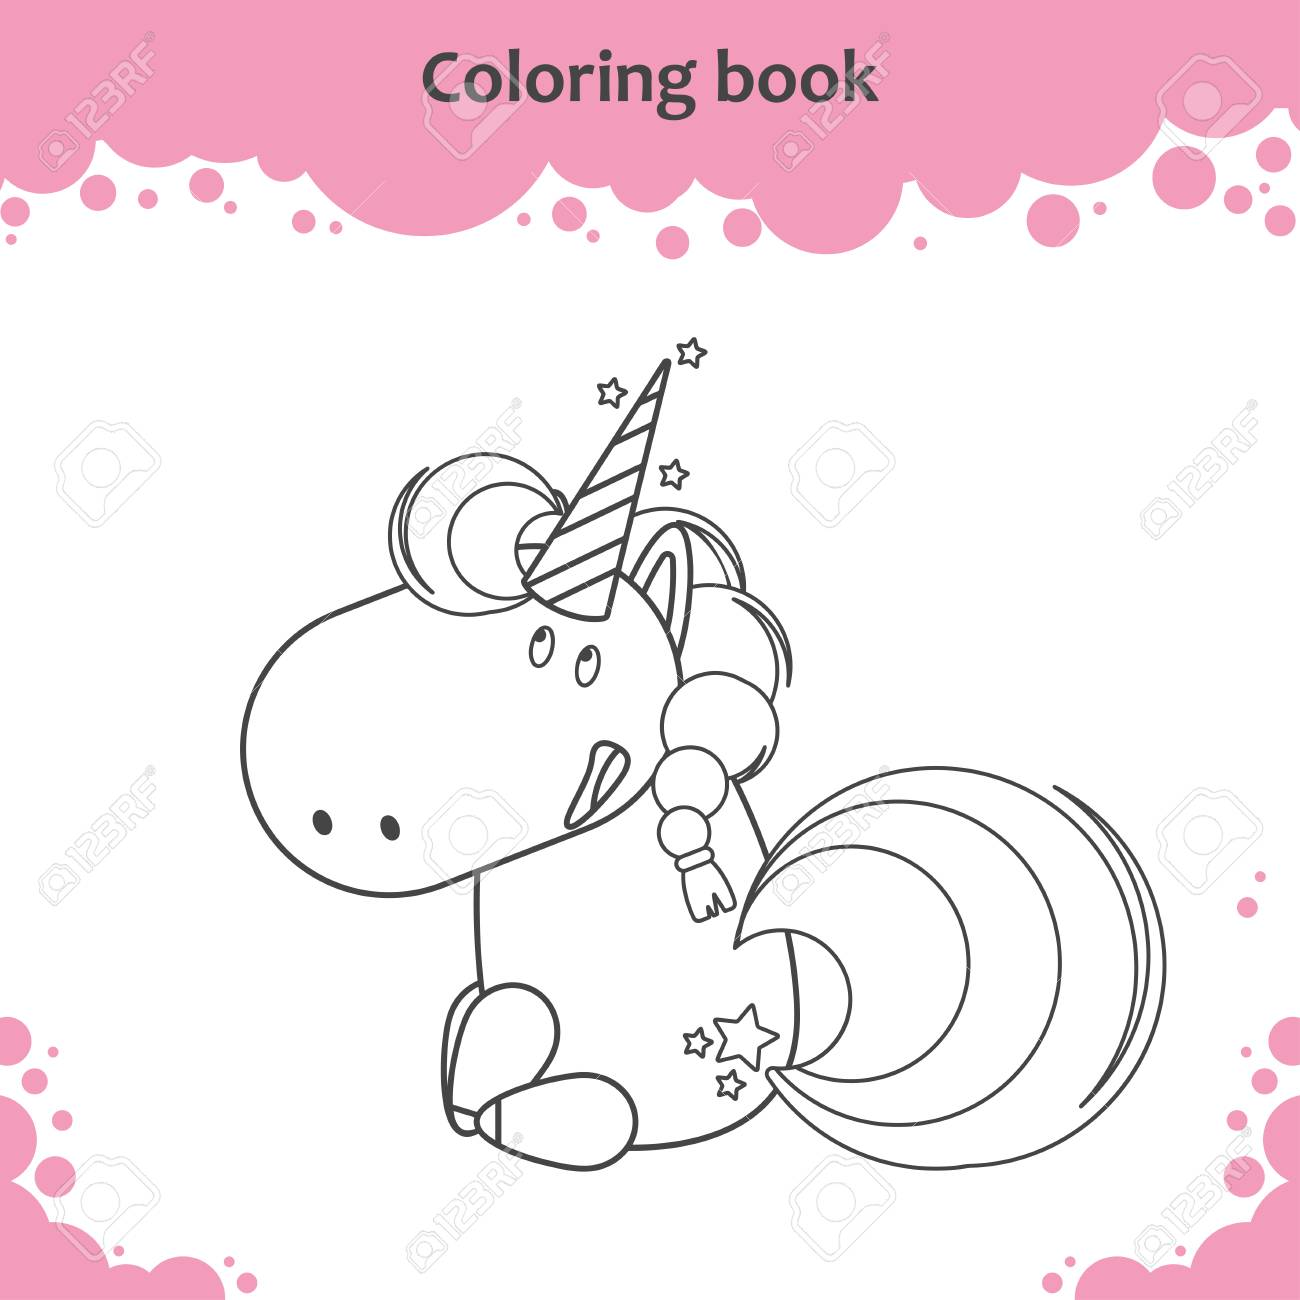 Color The Cute Cartoon Sitting Unicorn Coloring Page For Kids